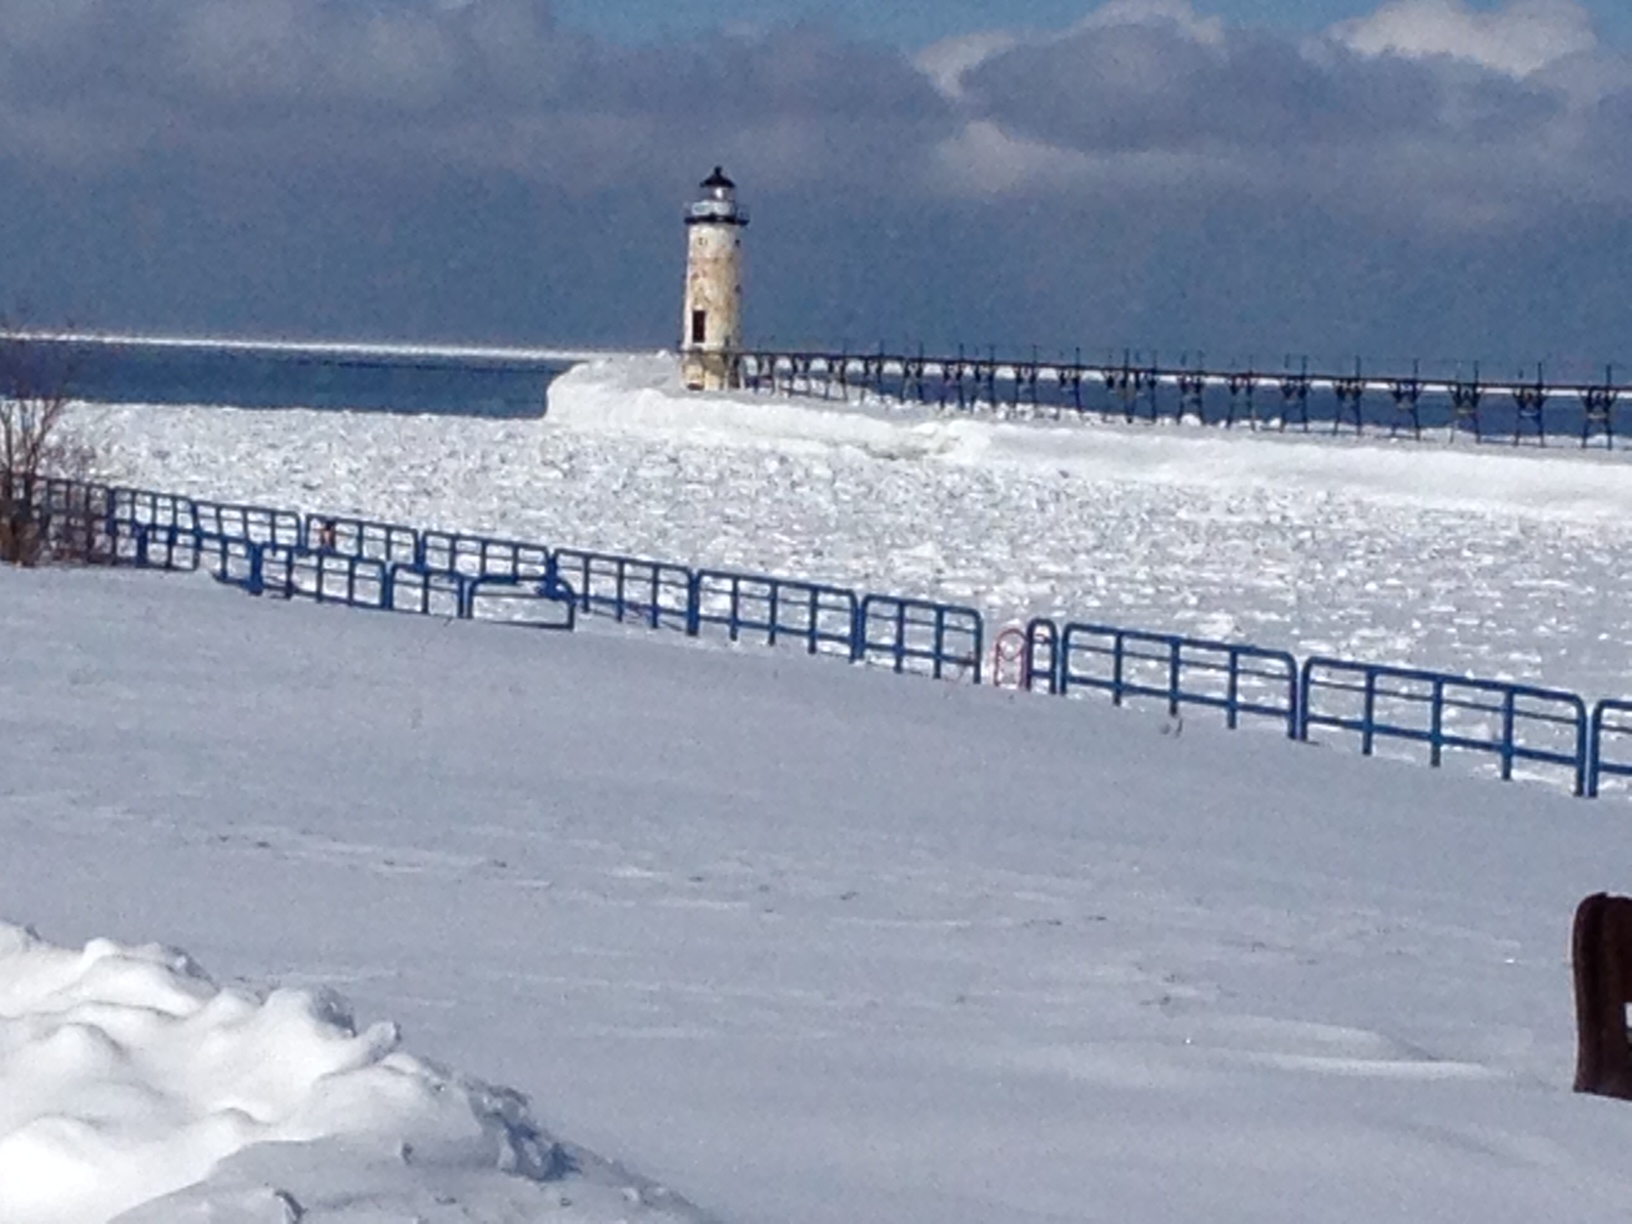 Winter scene of Manistee Harbor frozen over as seen from First Street with Fifth Avenue Lighthouse